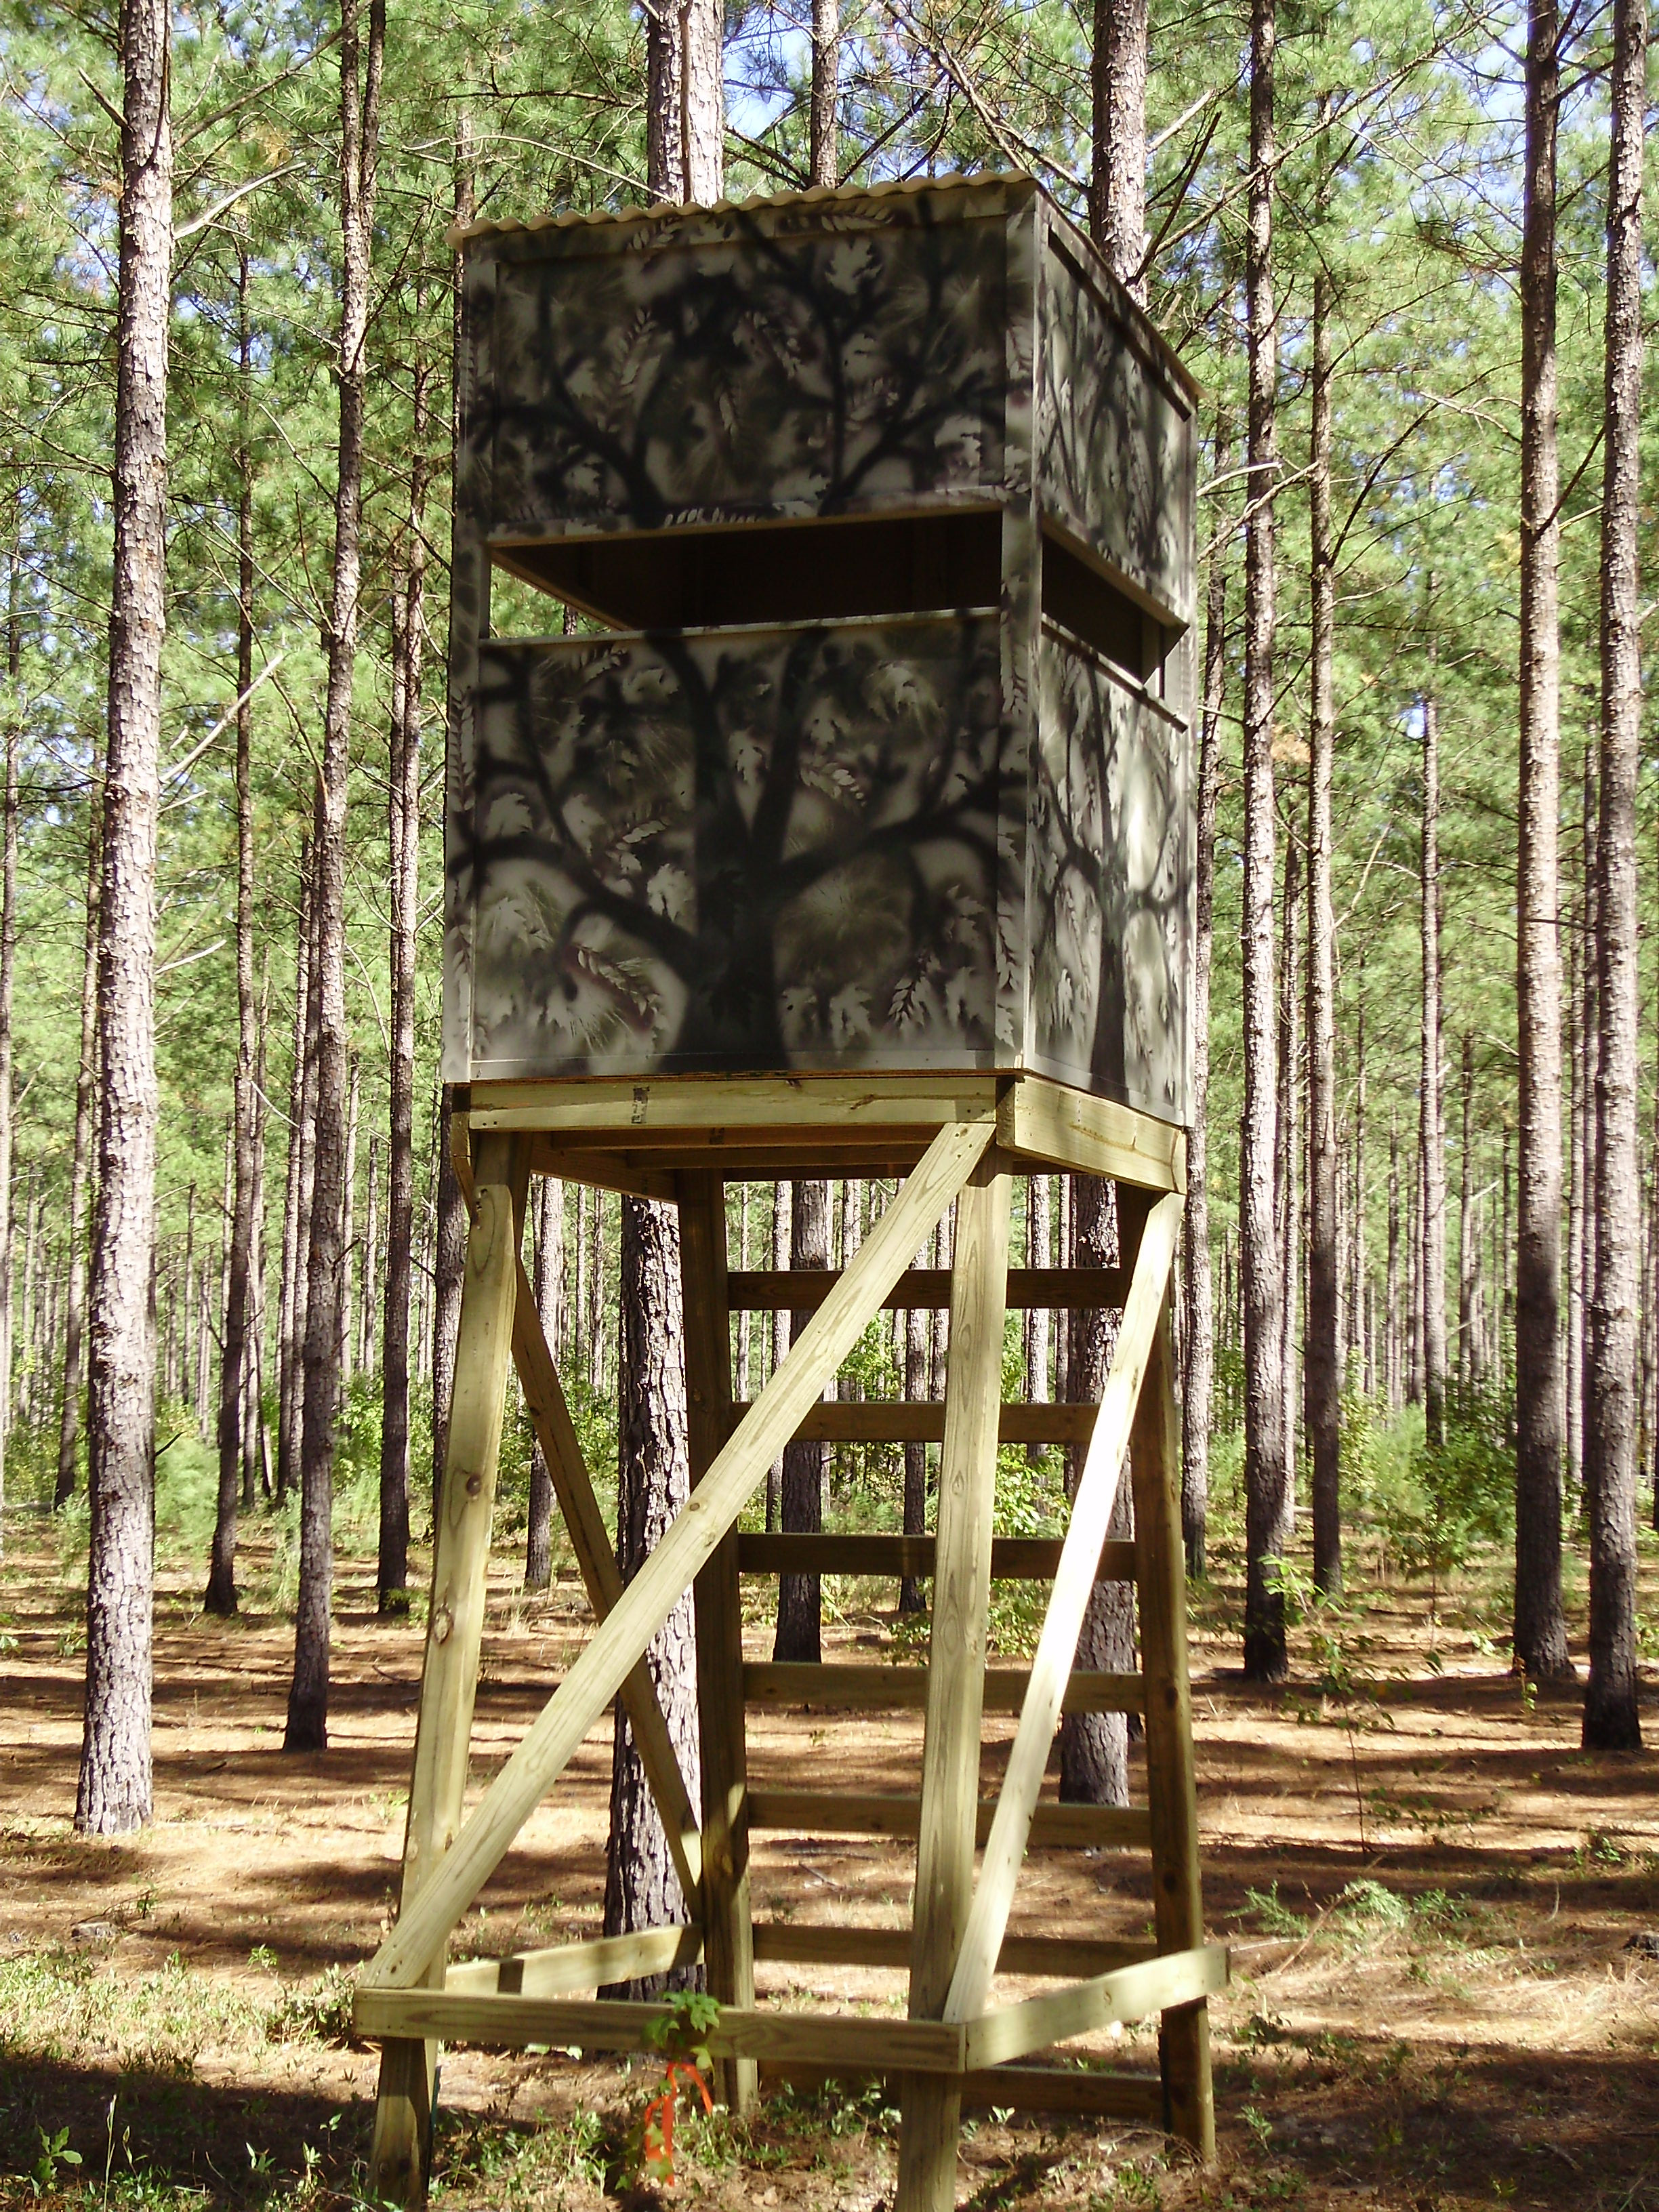 Best ideas about DIY Deer Stand Plans . Save or Pin Deer Stands Now.